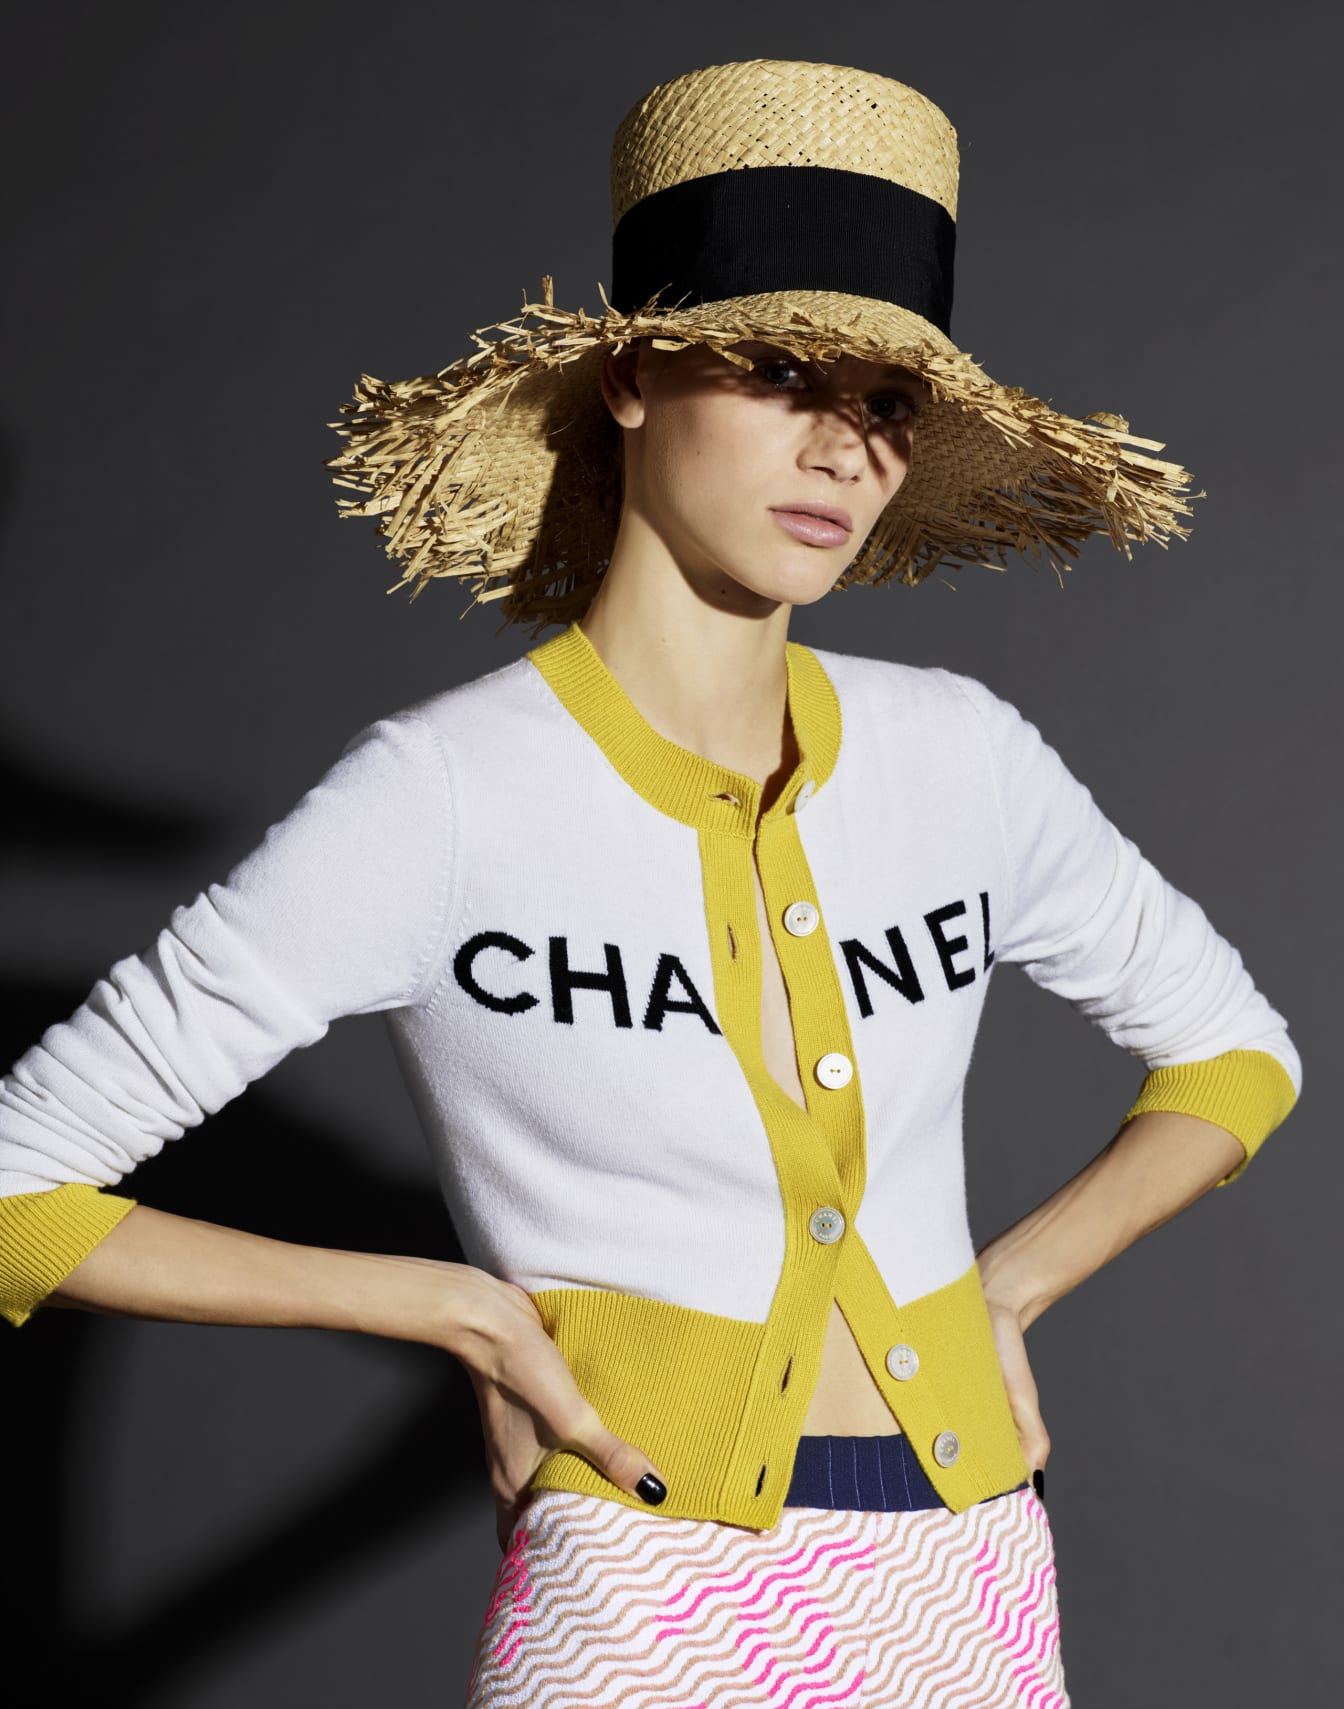 chanel_spring_2019_campaign24.jpg